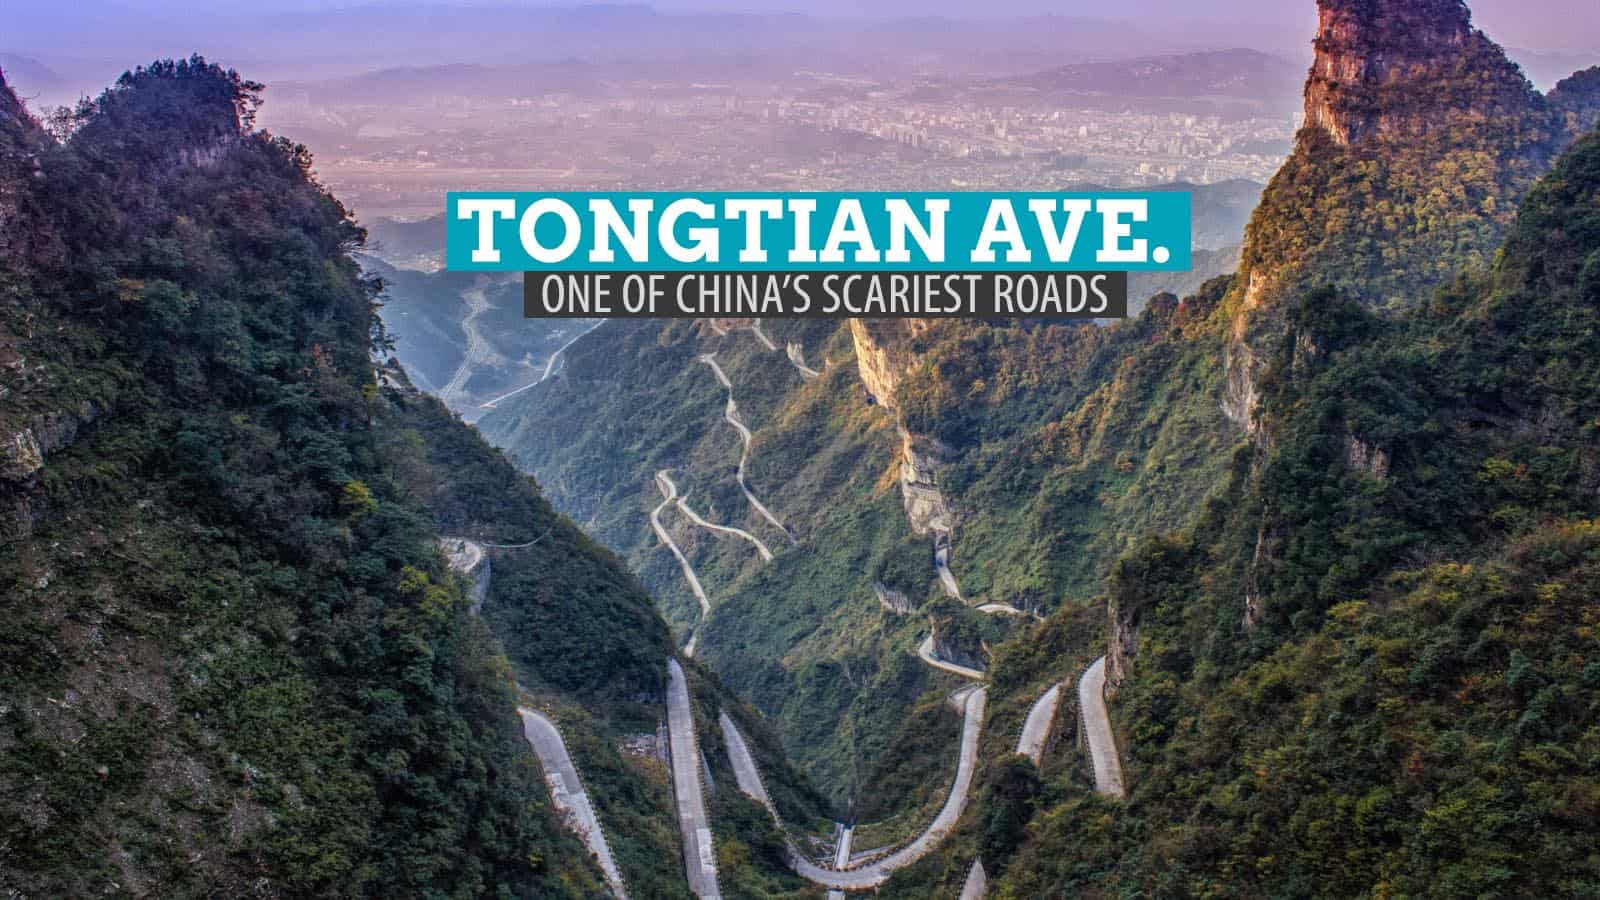 Tongtian Avenue: One of China's Most Dangerous Roads